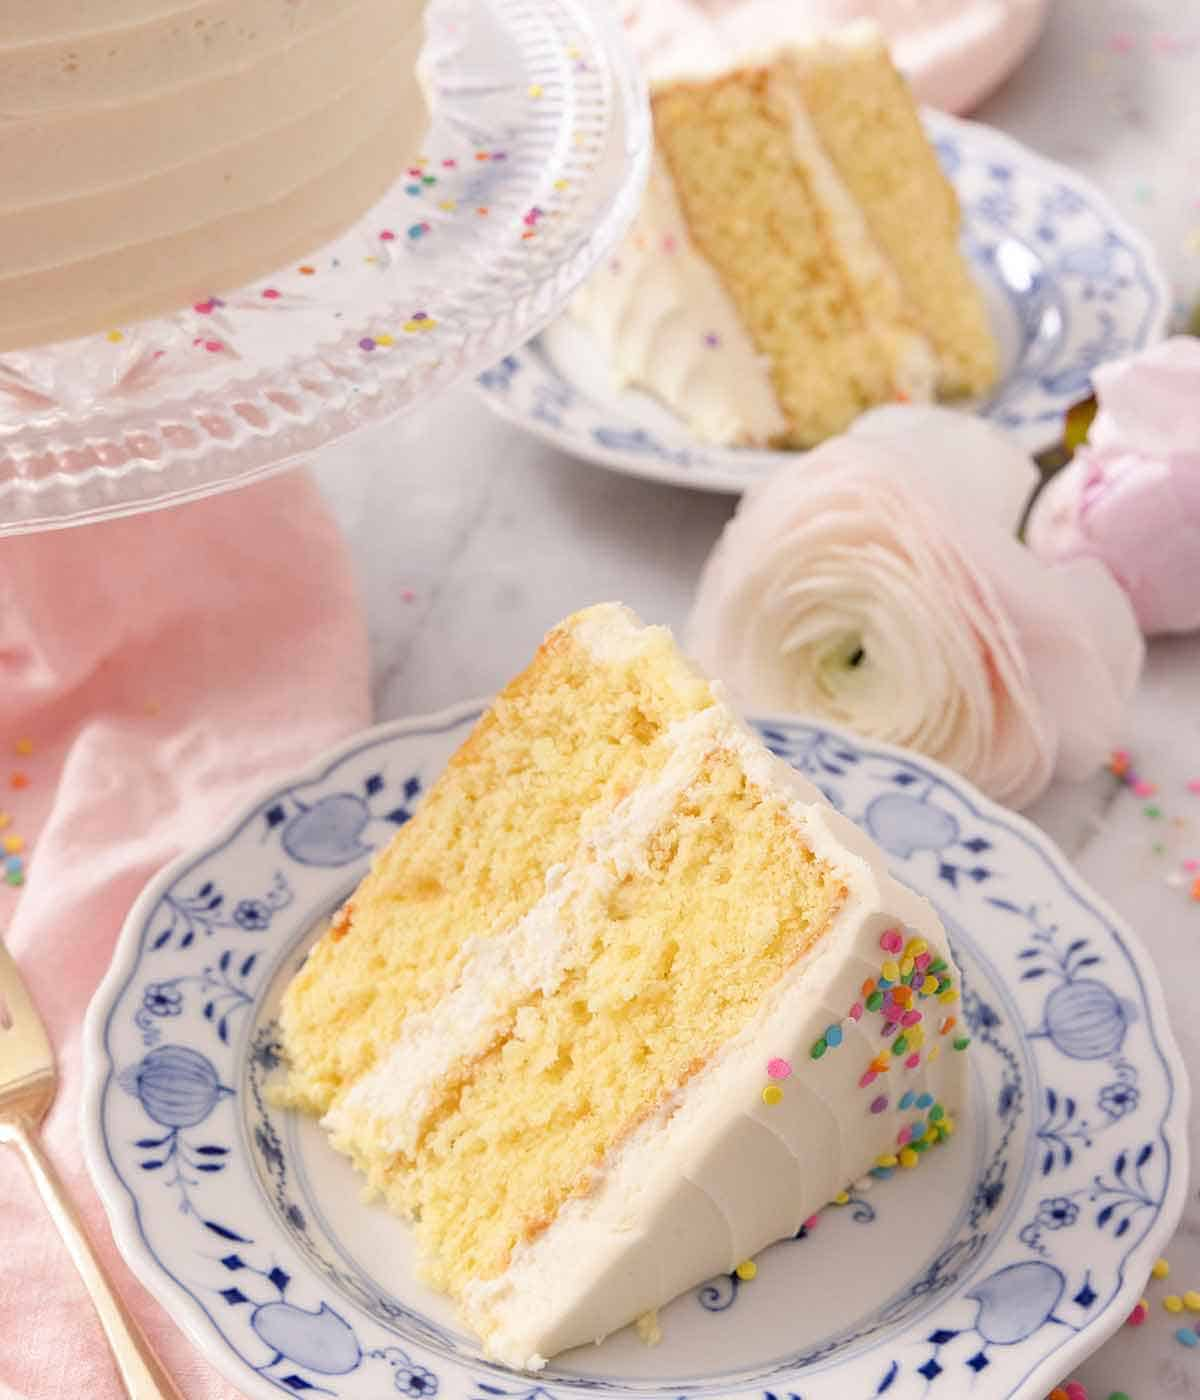 A blue plate with a slice of layered vanilla cake.